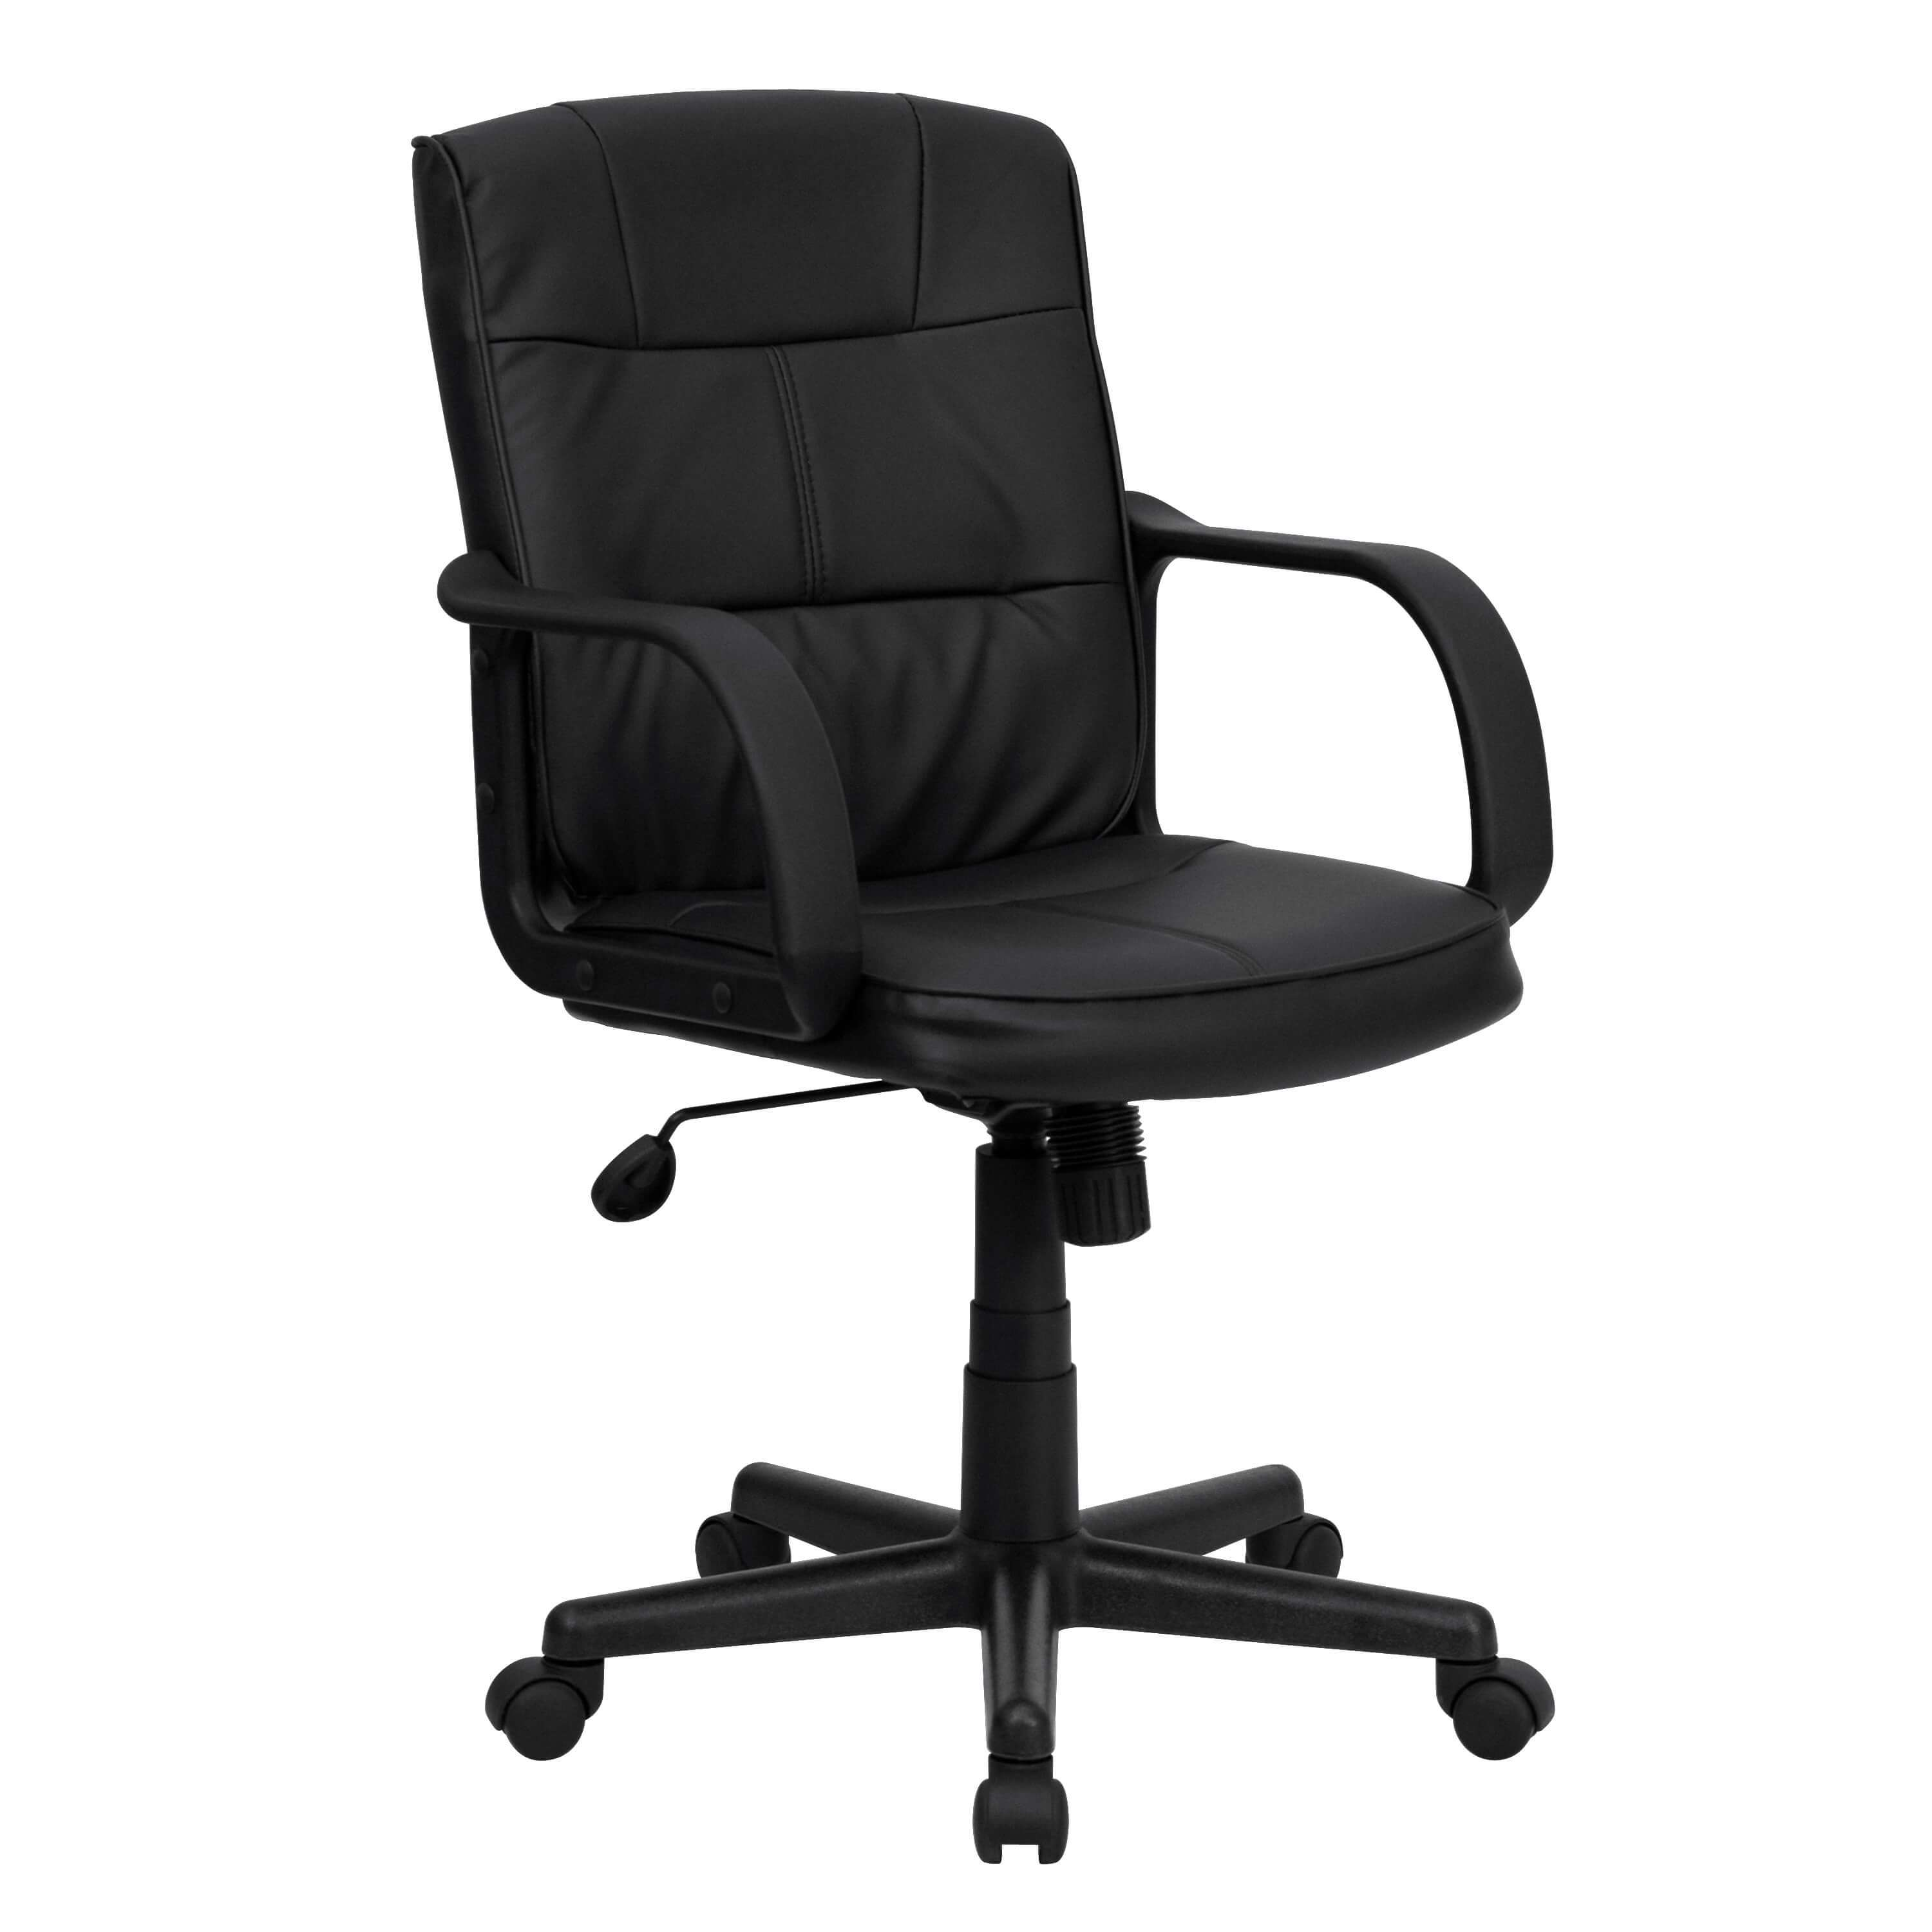 fun desk chairs travel high chair booster seats dorado black leather office